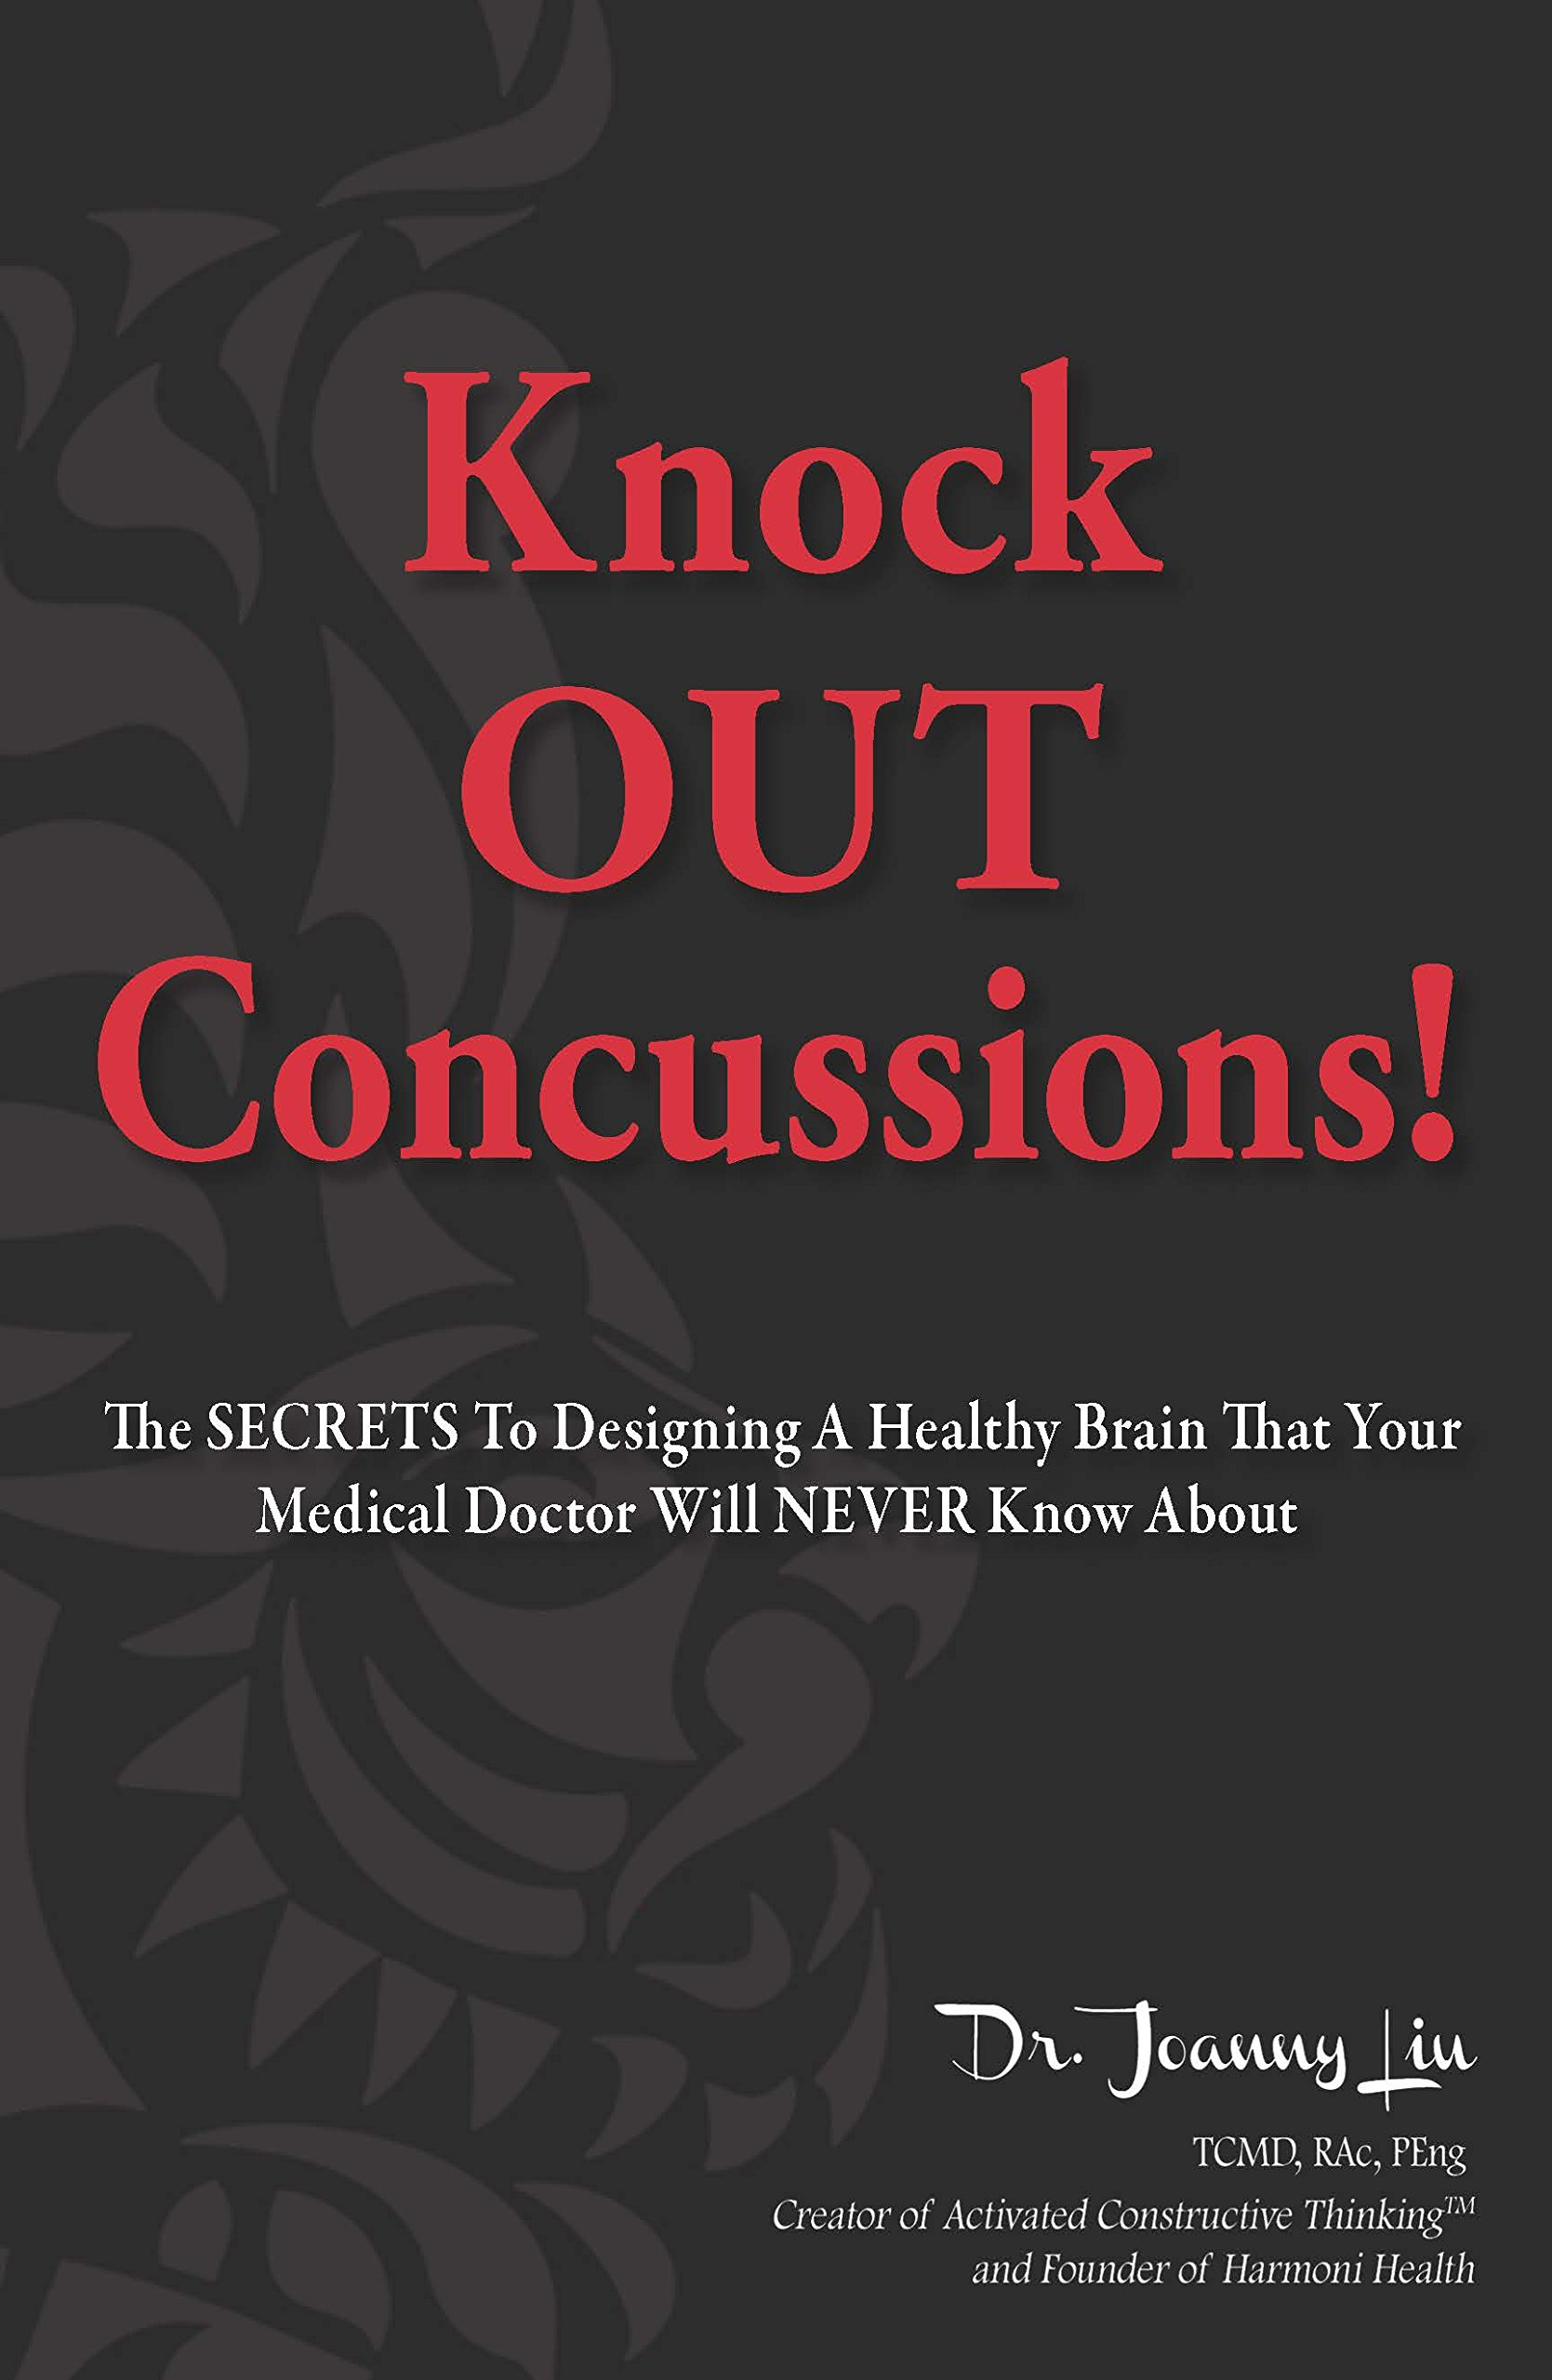 Image OfKnock OUT Concussions: The Secrets To Designing A Healthy Brain That Your Medical Doctor Will NEVER Know